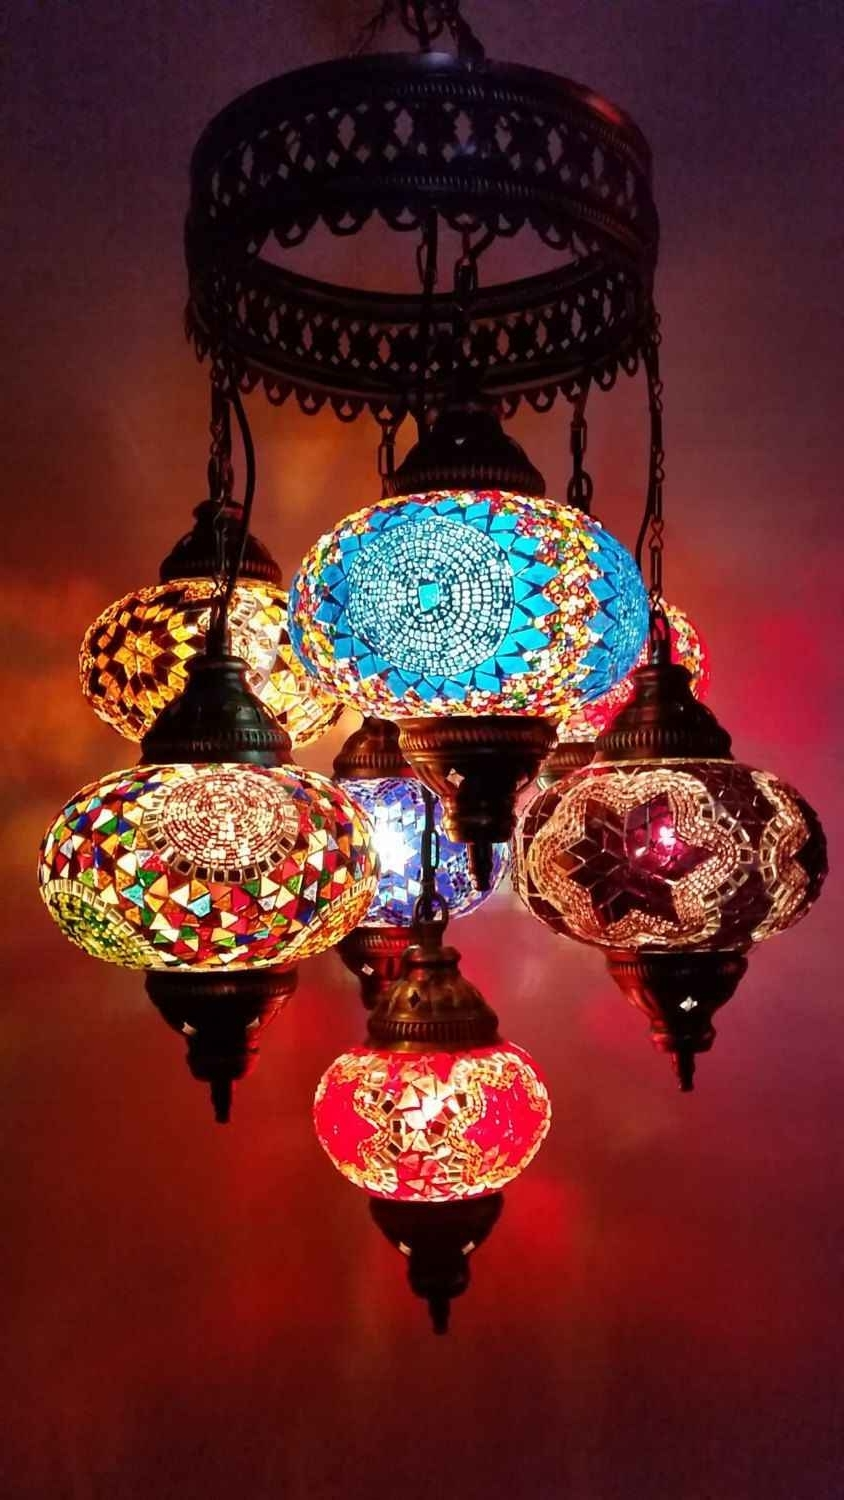 Multicolor Handmade 7 Balls Moroccan Mosaic Hanging Lamp Lantern Intended For Preferred Outdoor Mosaic Lanterns (View 3 of 20)